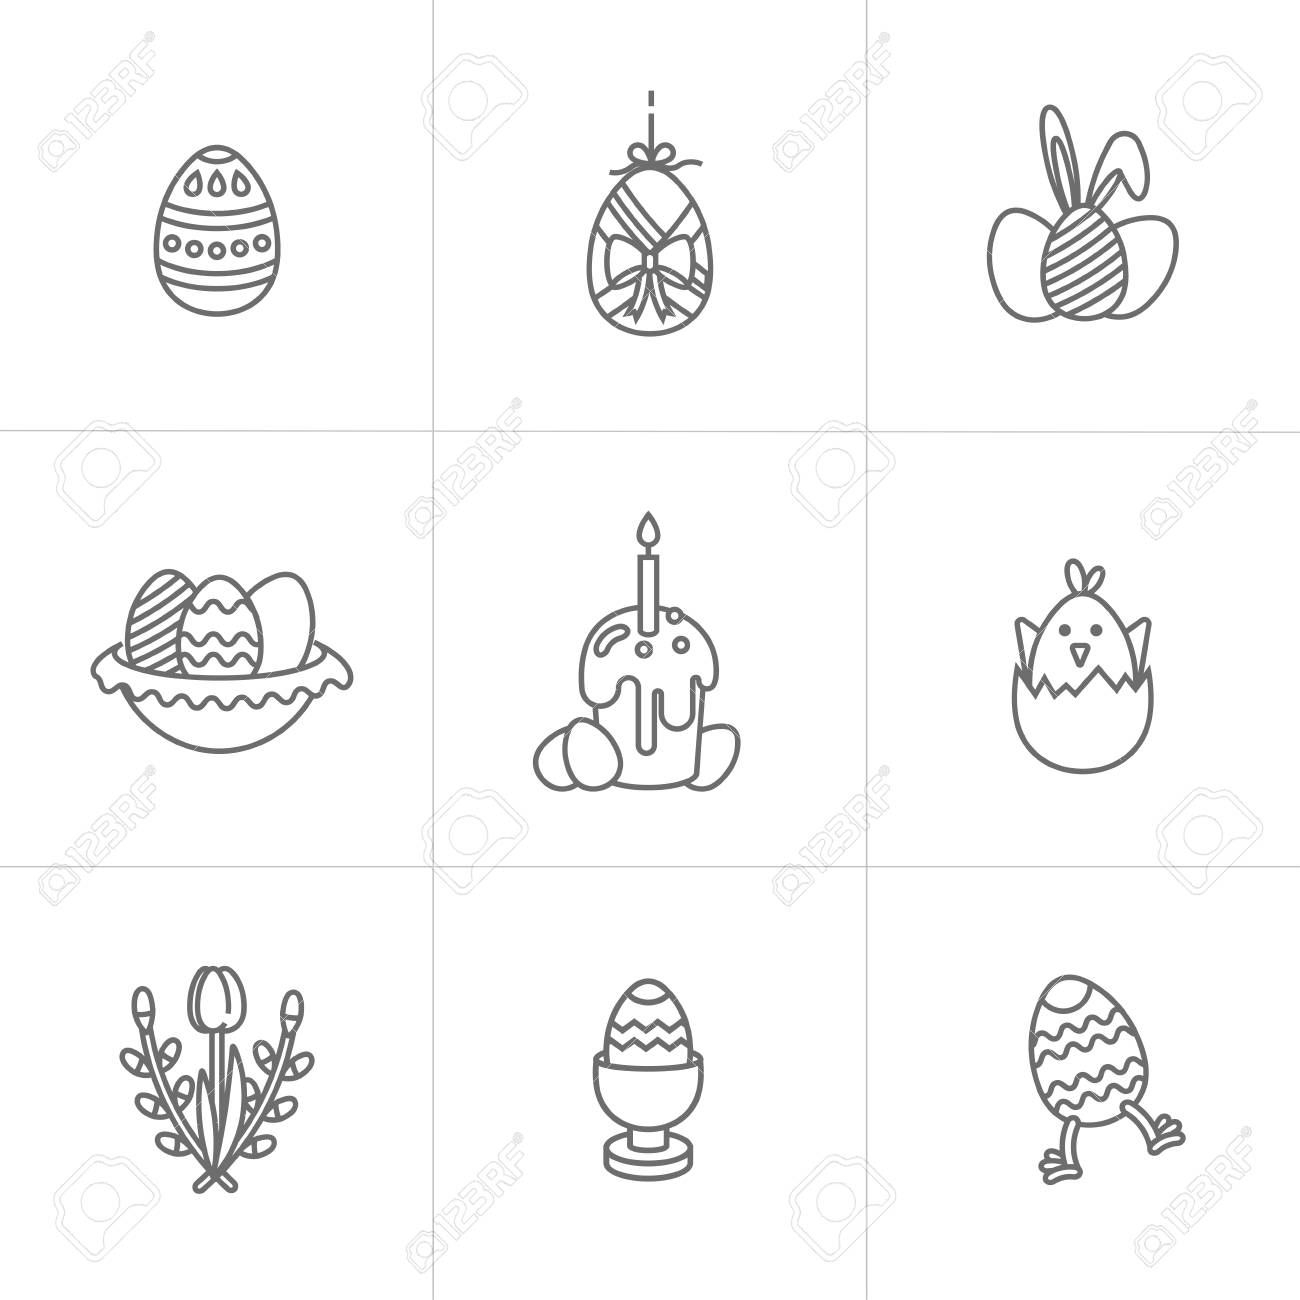 image about Happy Easter Cards Printable identified as Vector linear layout Easter greetings factors. Fastened of icon for..